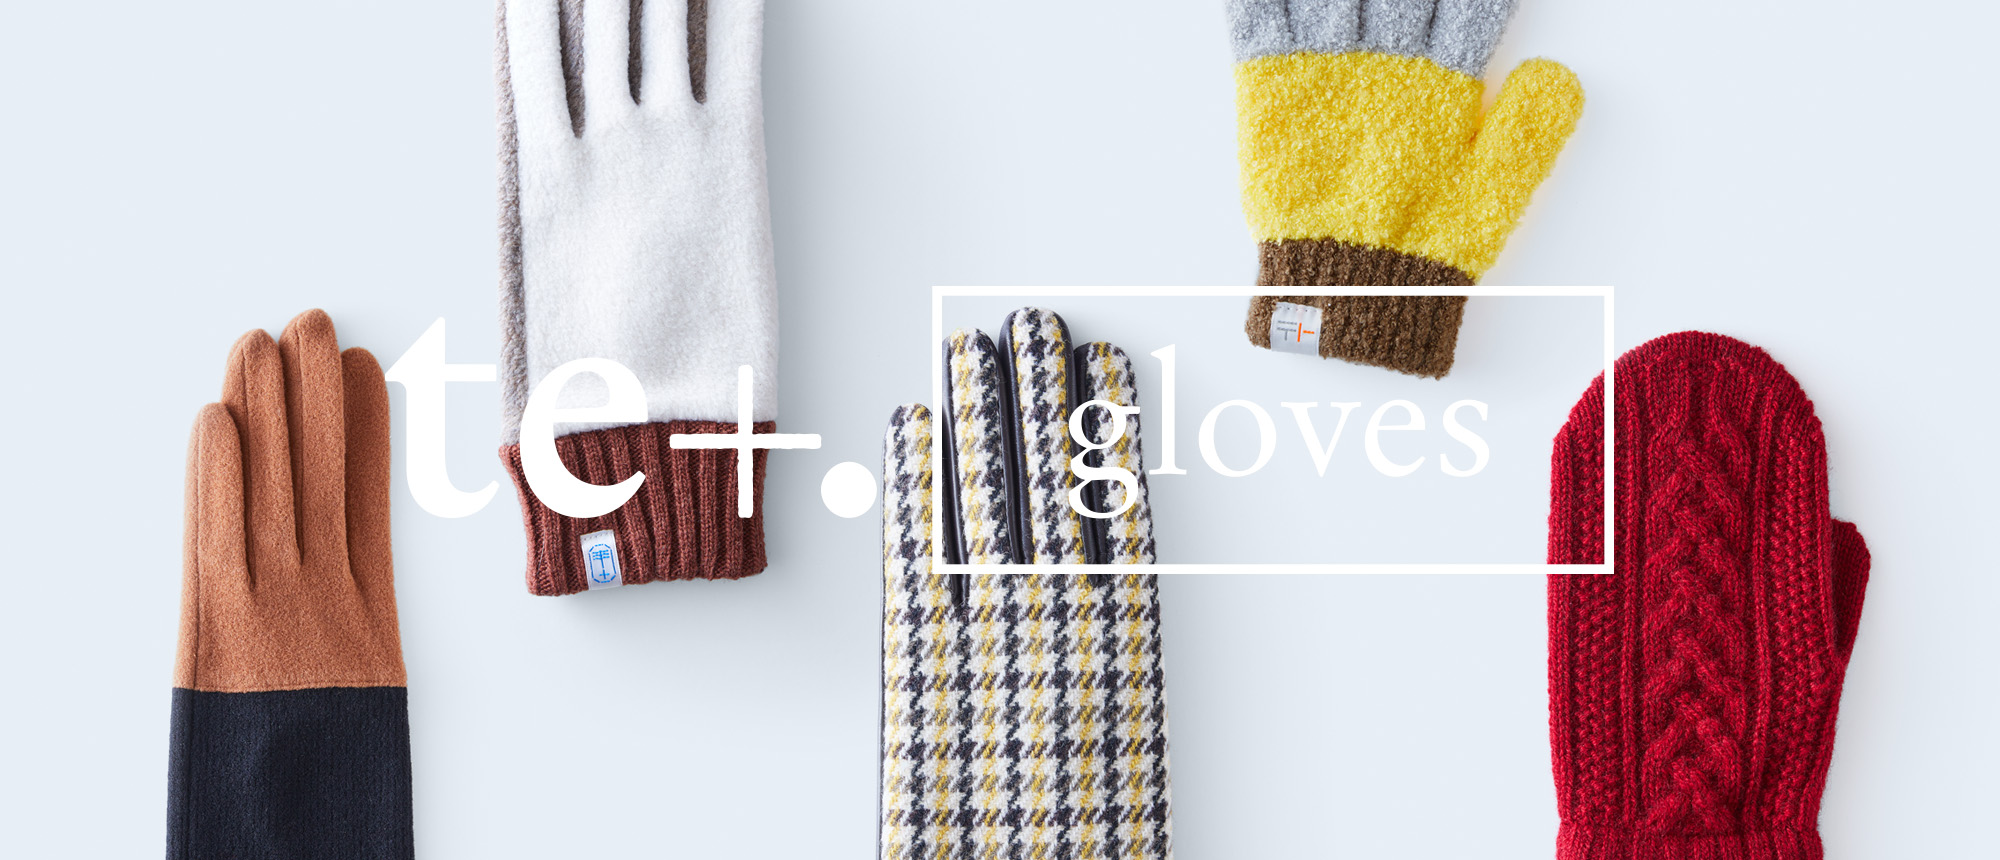 tet_2018aw_gloves_visual